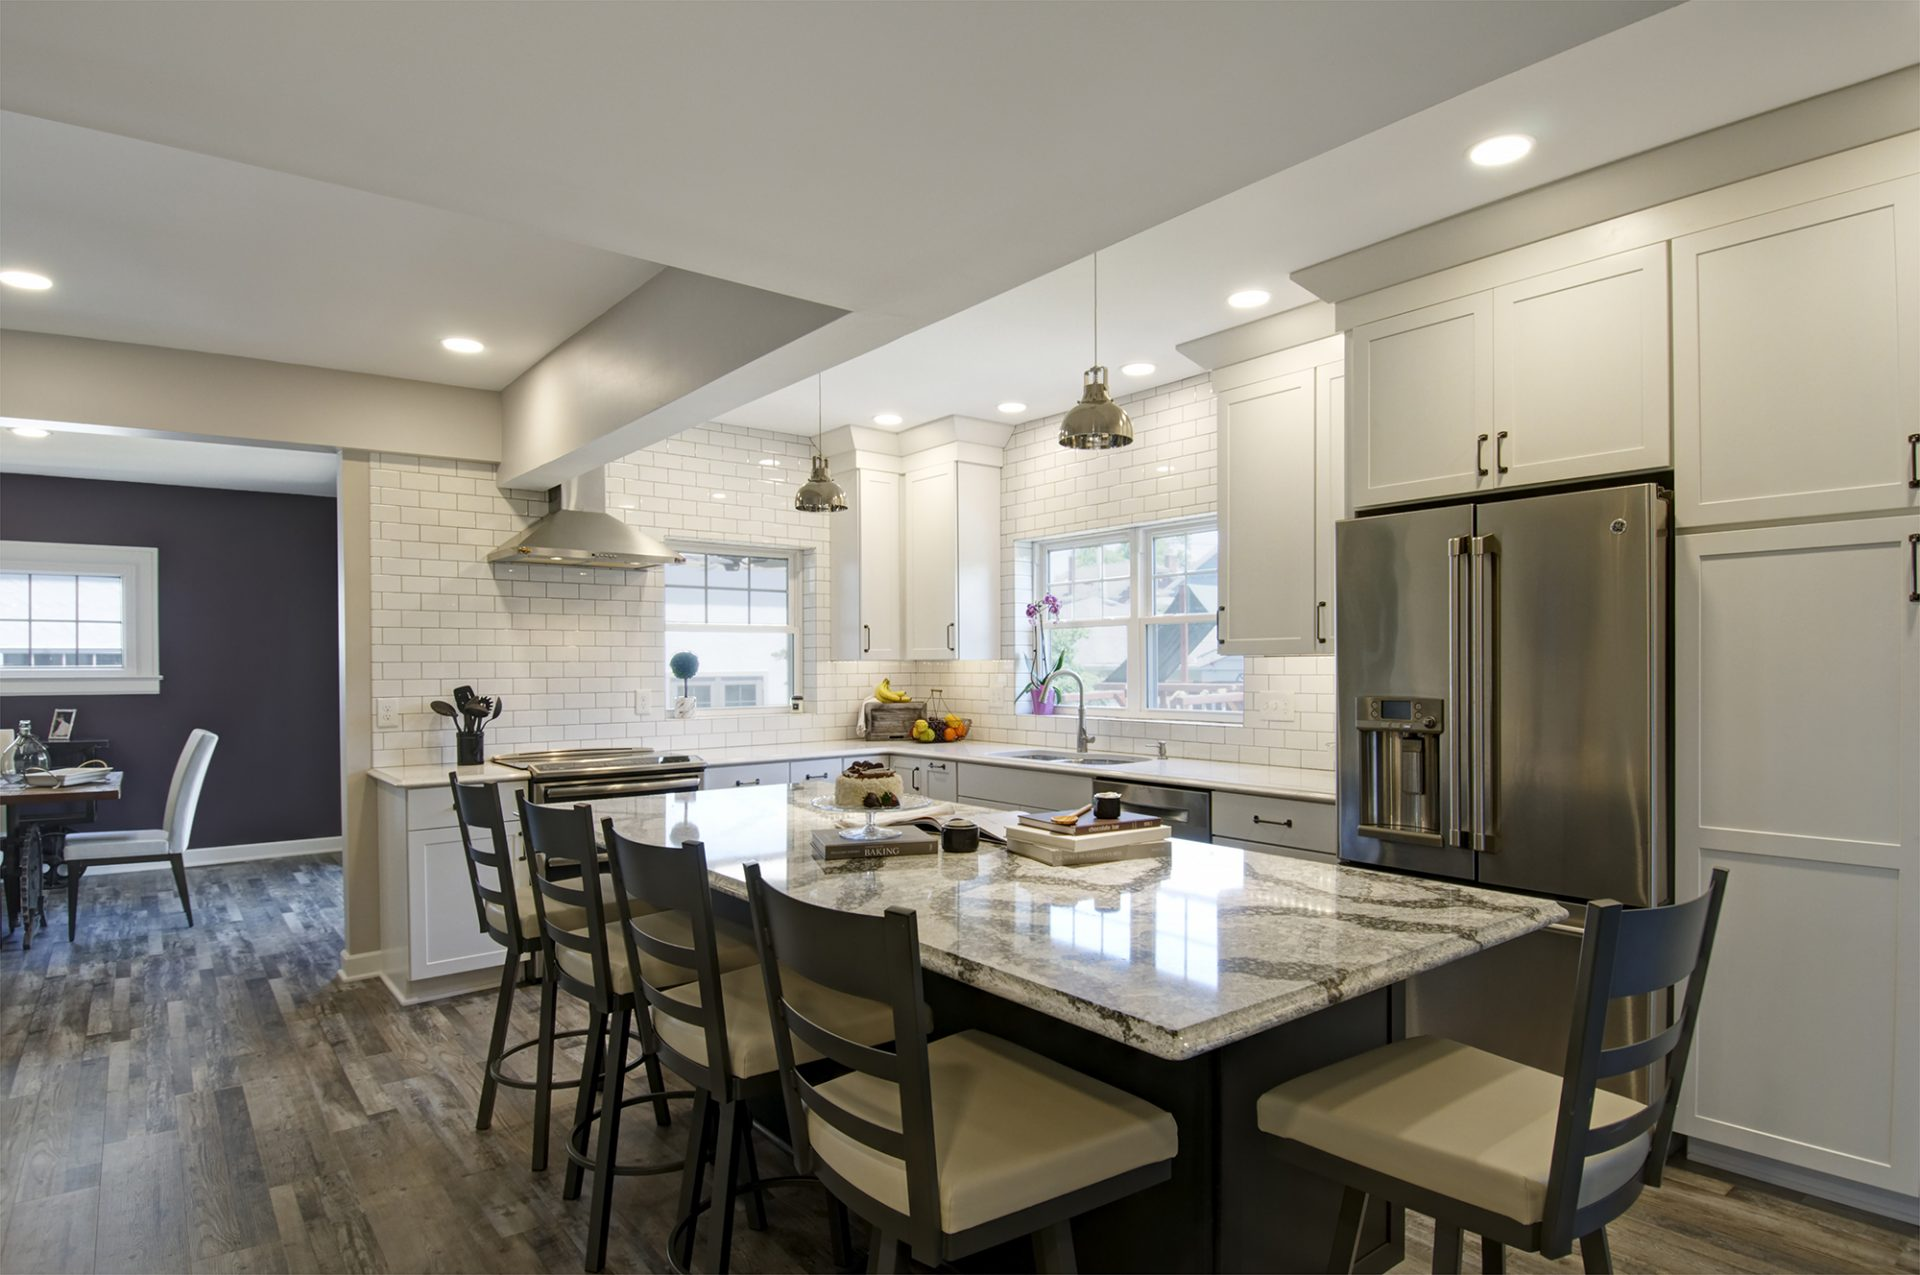 Kitchen, Bexley, Dave Fox, Remodel, island, cambria, quartz, white cabinets, LVT, pendant lights, range hood, subway tile